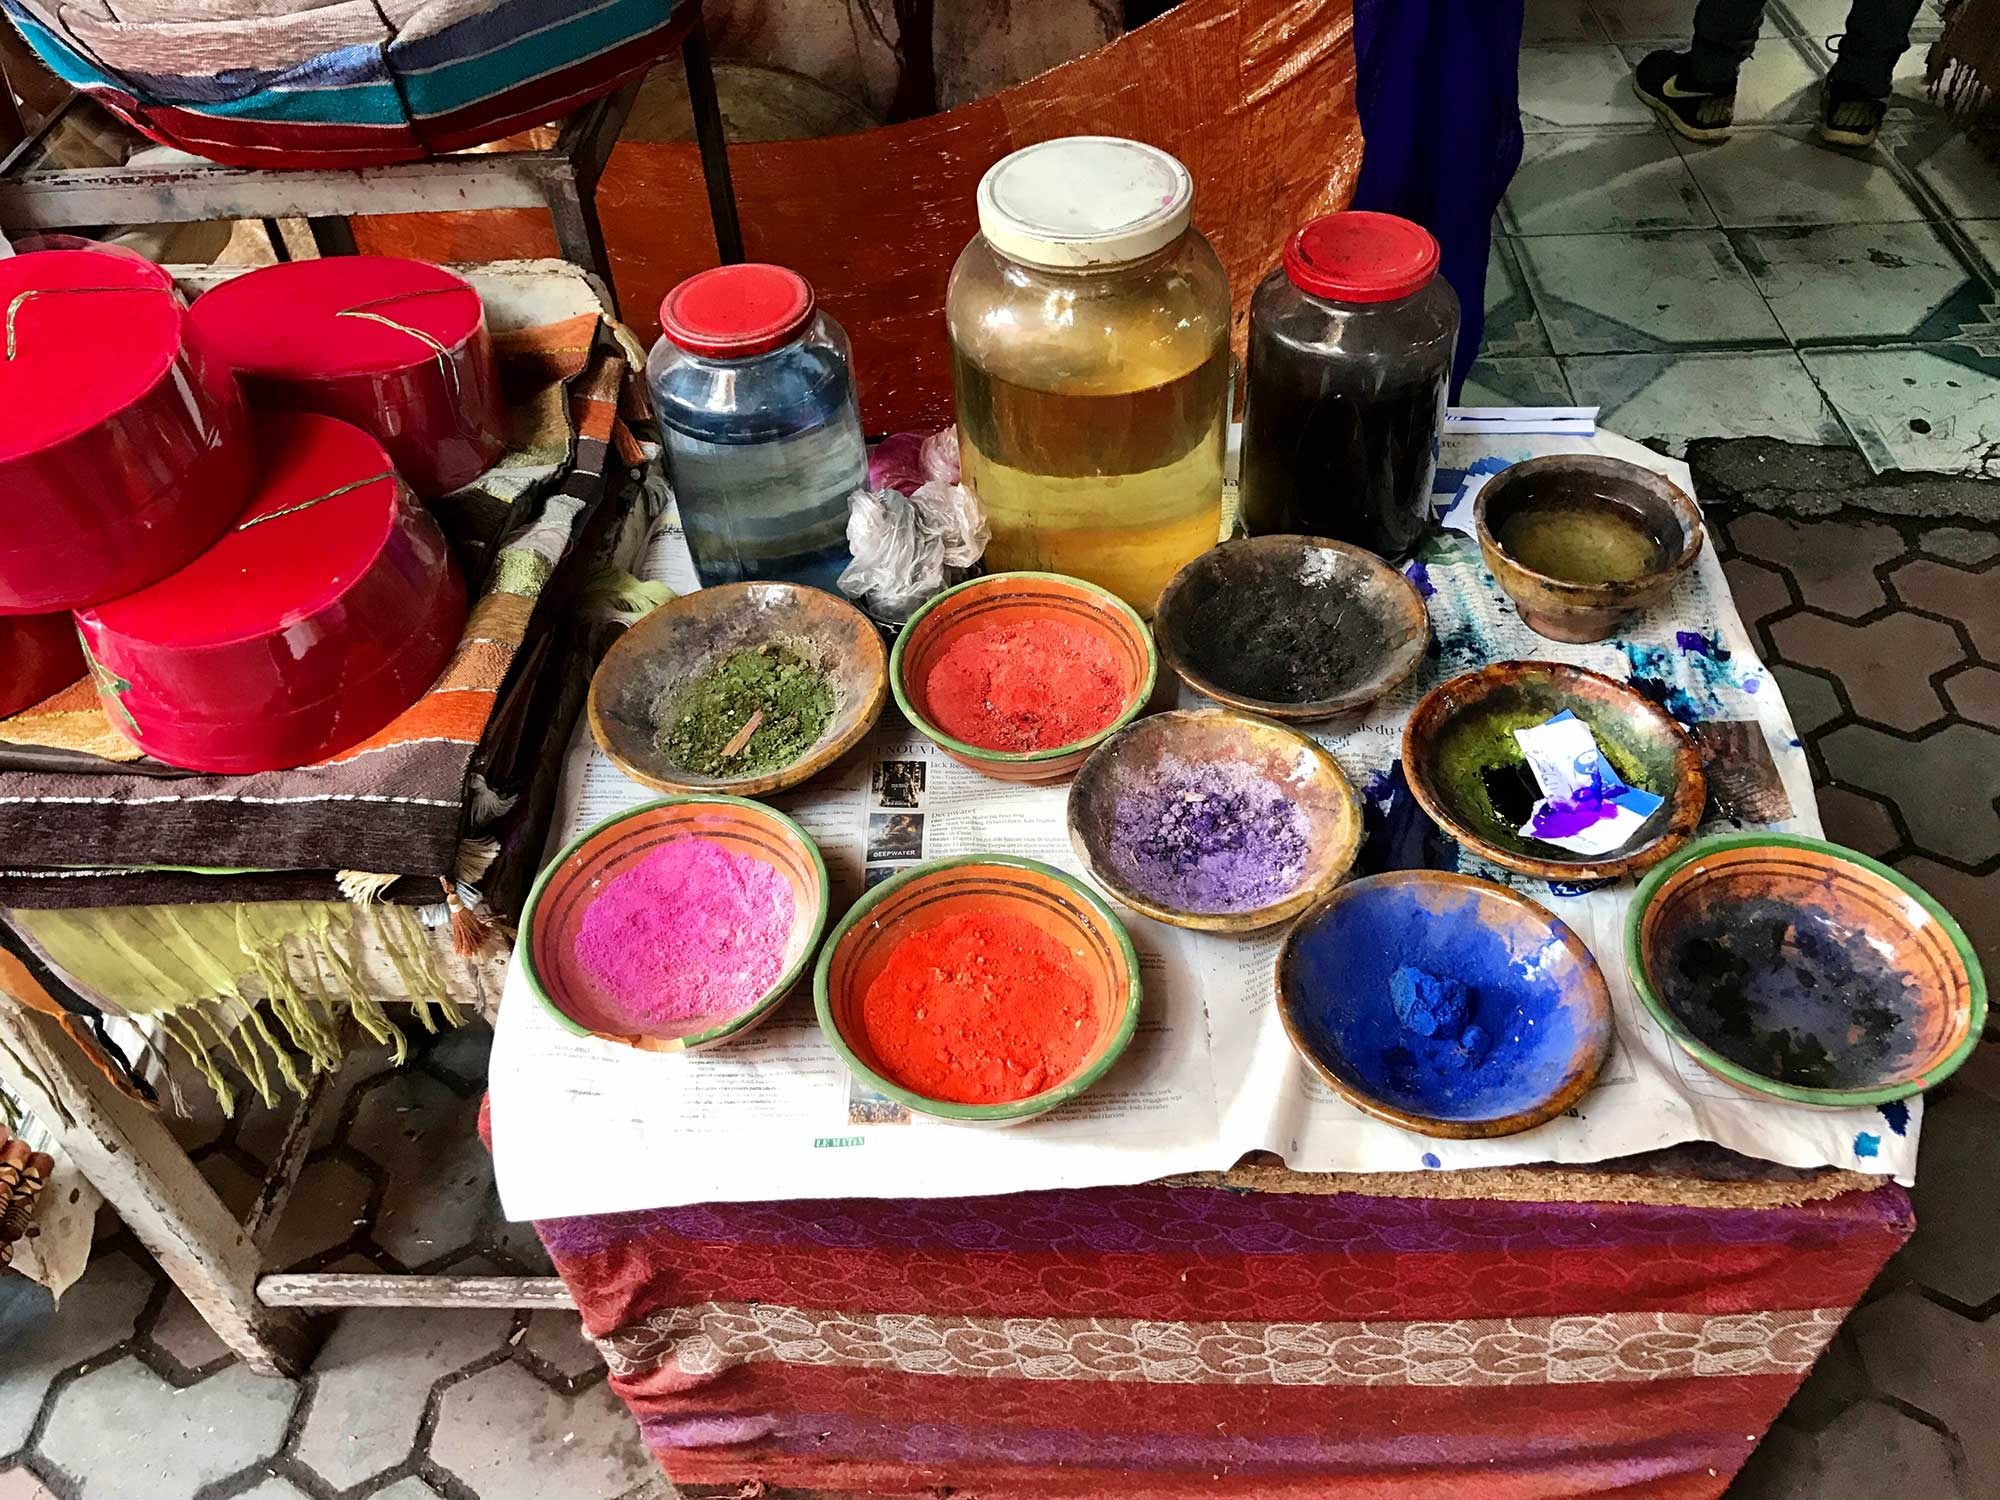 Dye pigments in the Medina